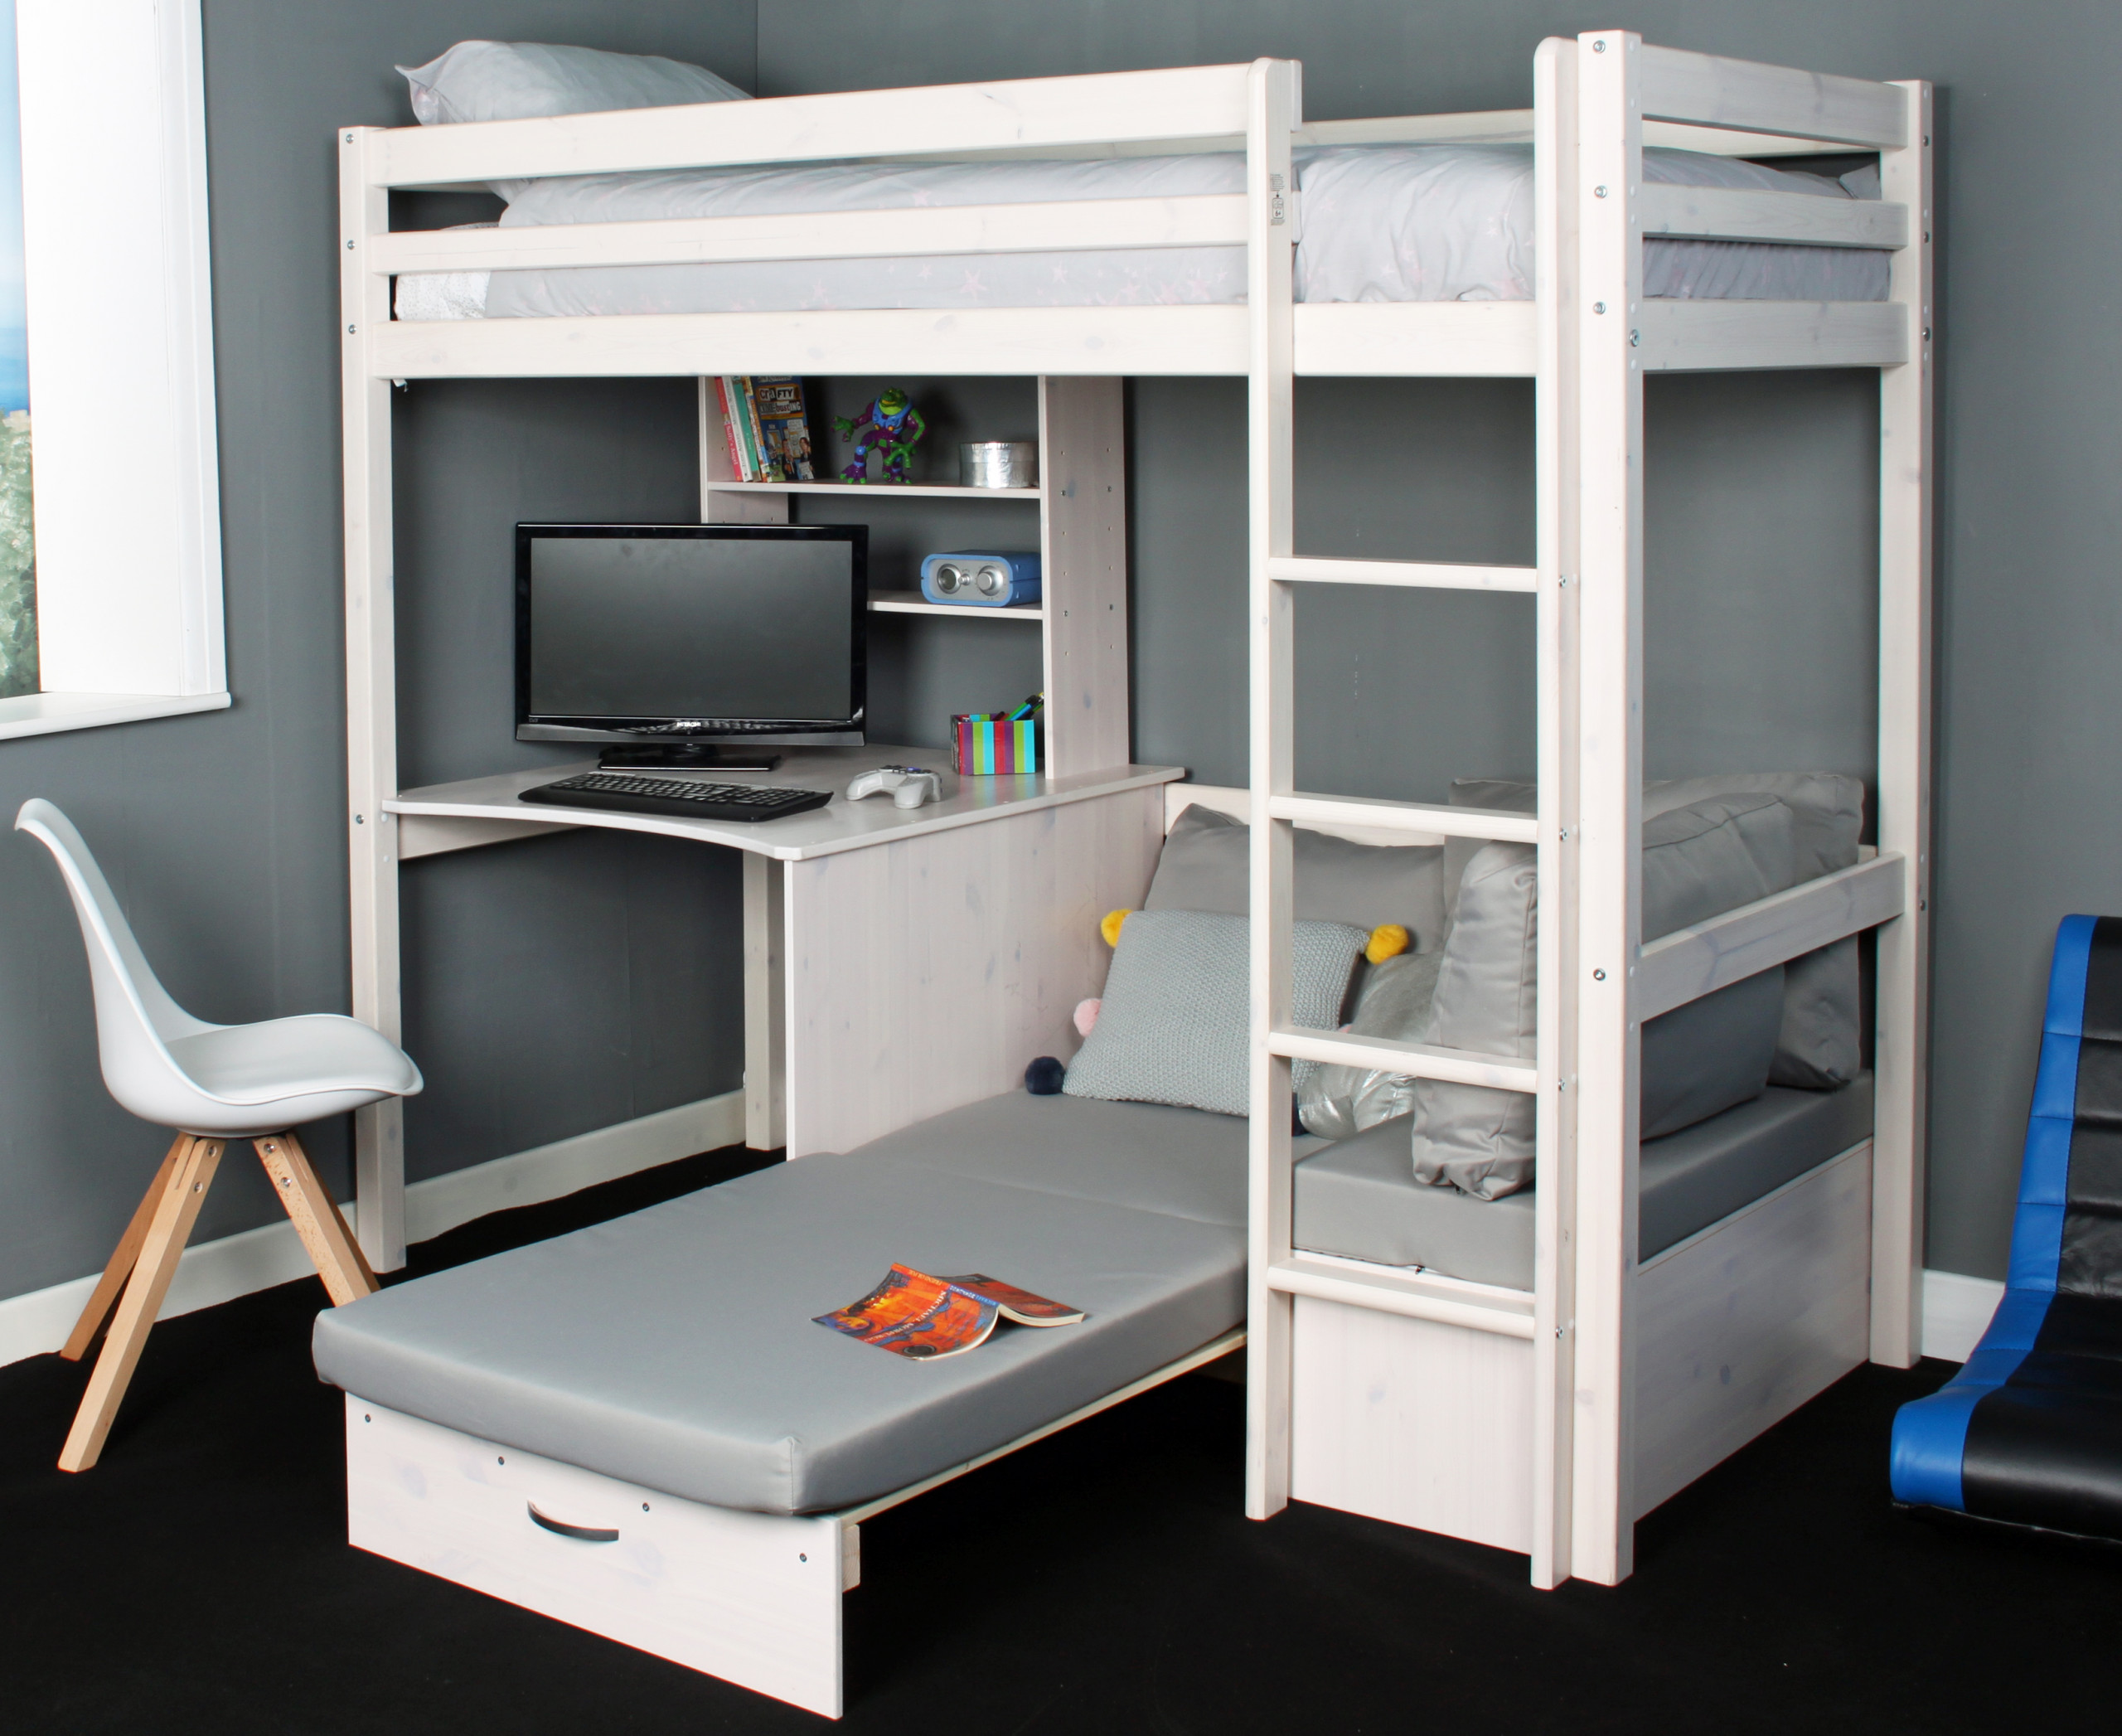 Thuka Hit 9 Highsleeper With Desk Chairbed